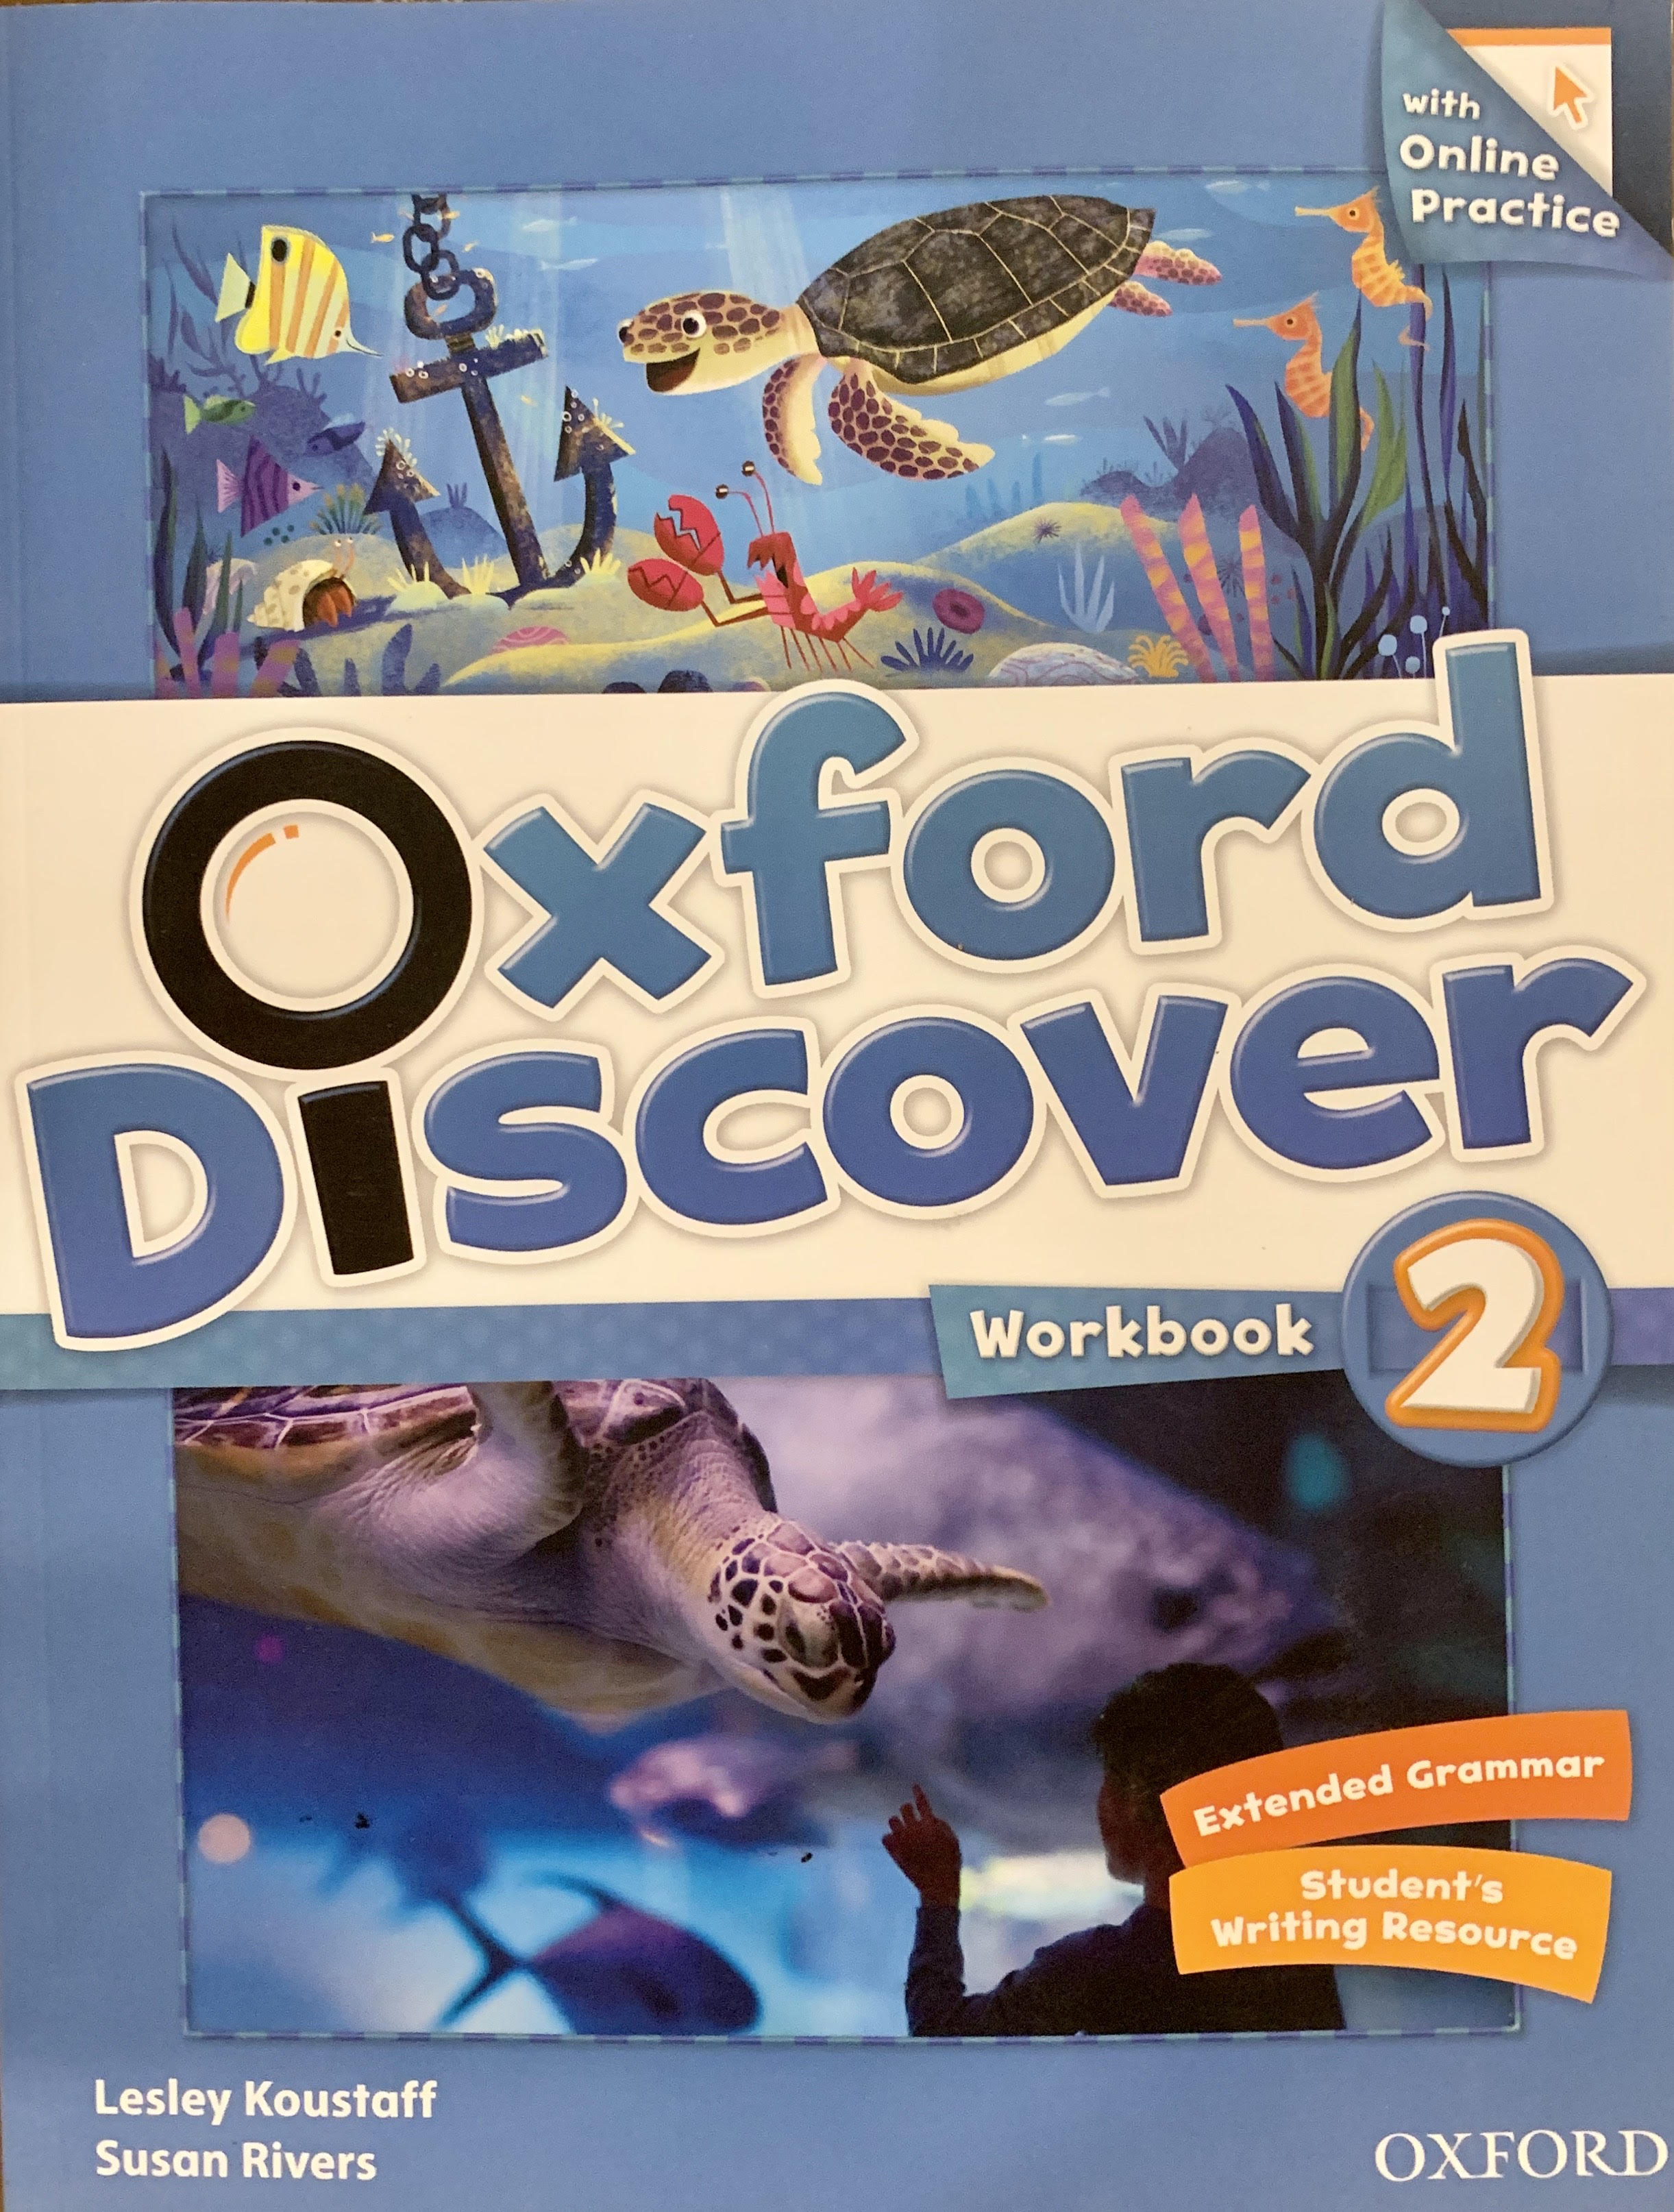 Oxford Discover Work 2